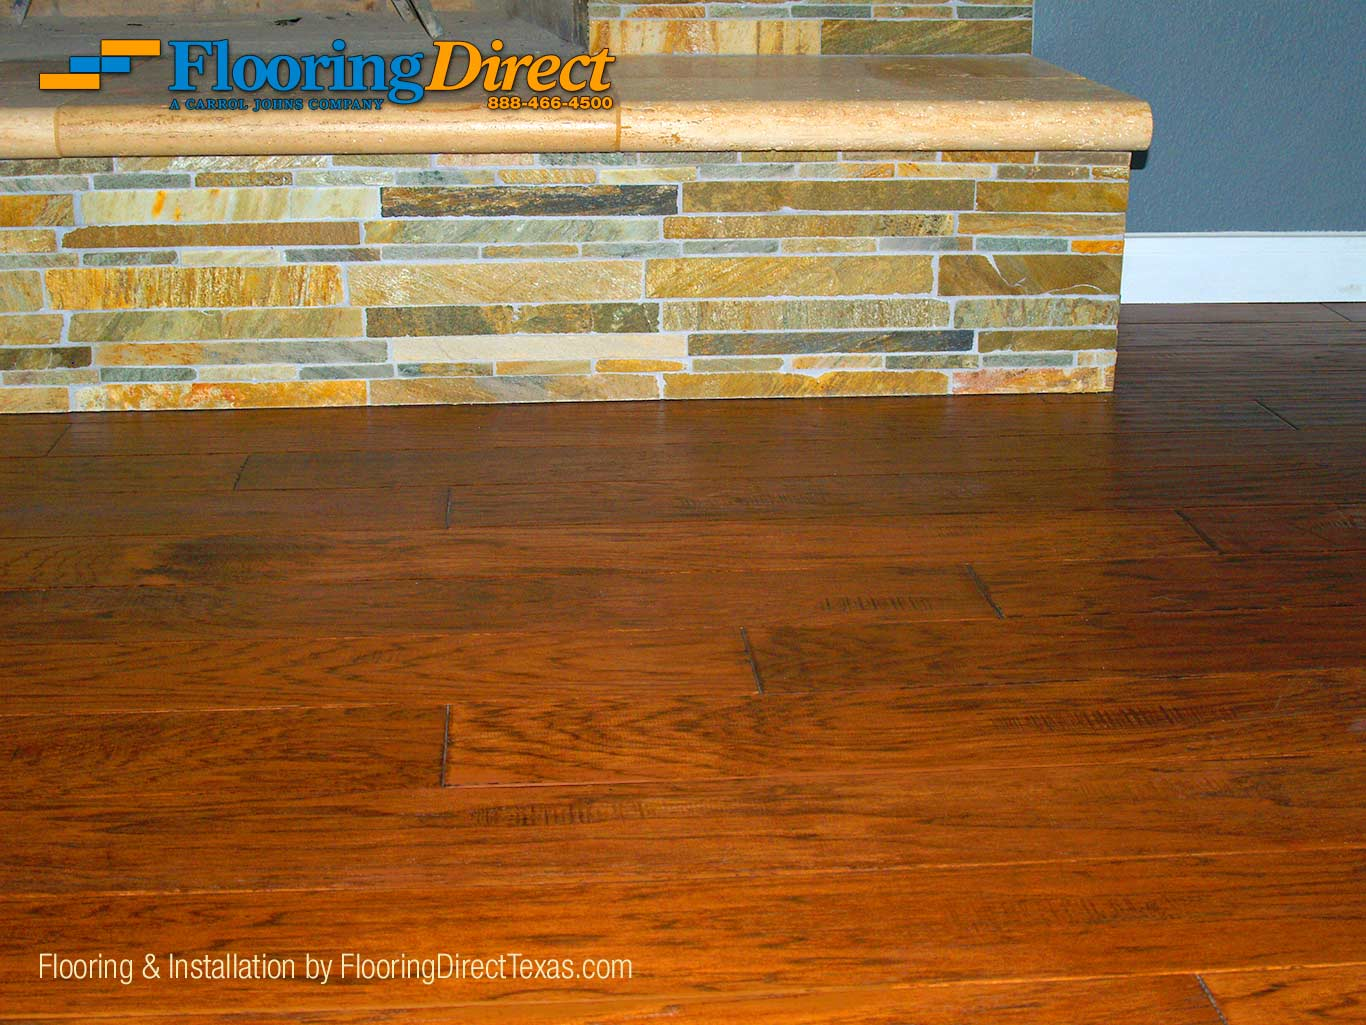 Hardwood Flooring Cut-under Fireplace Close-up